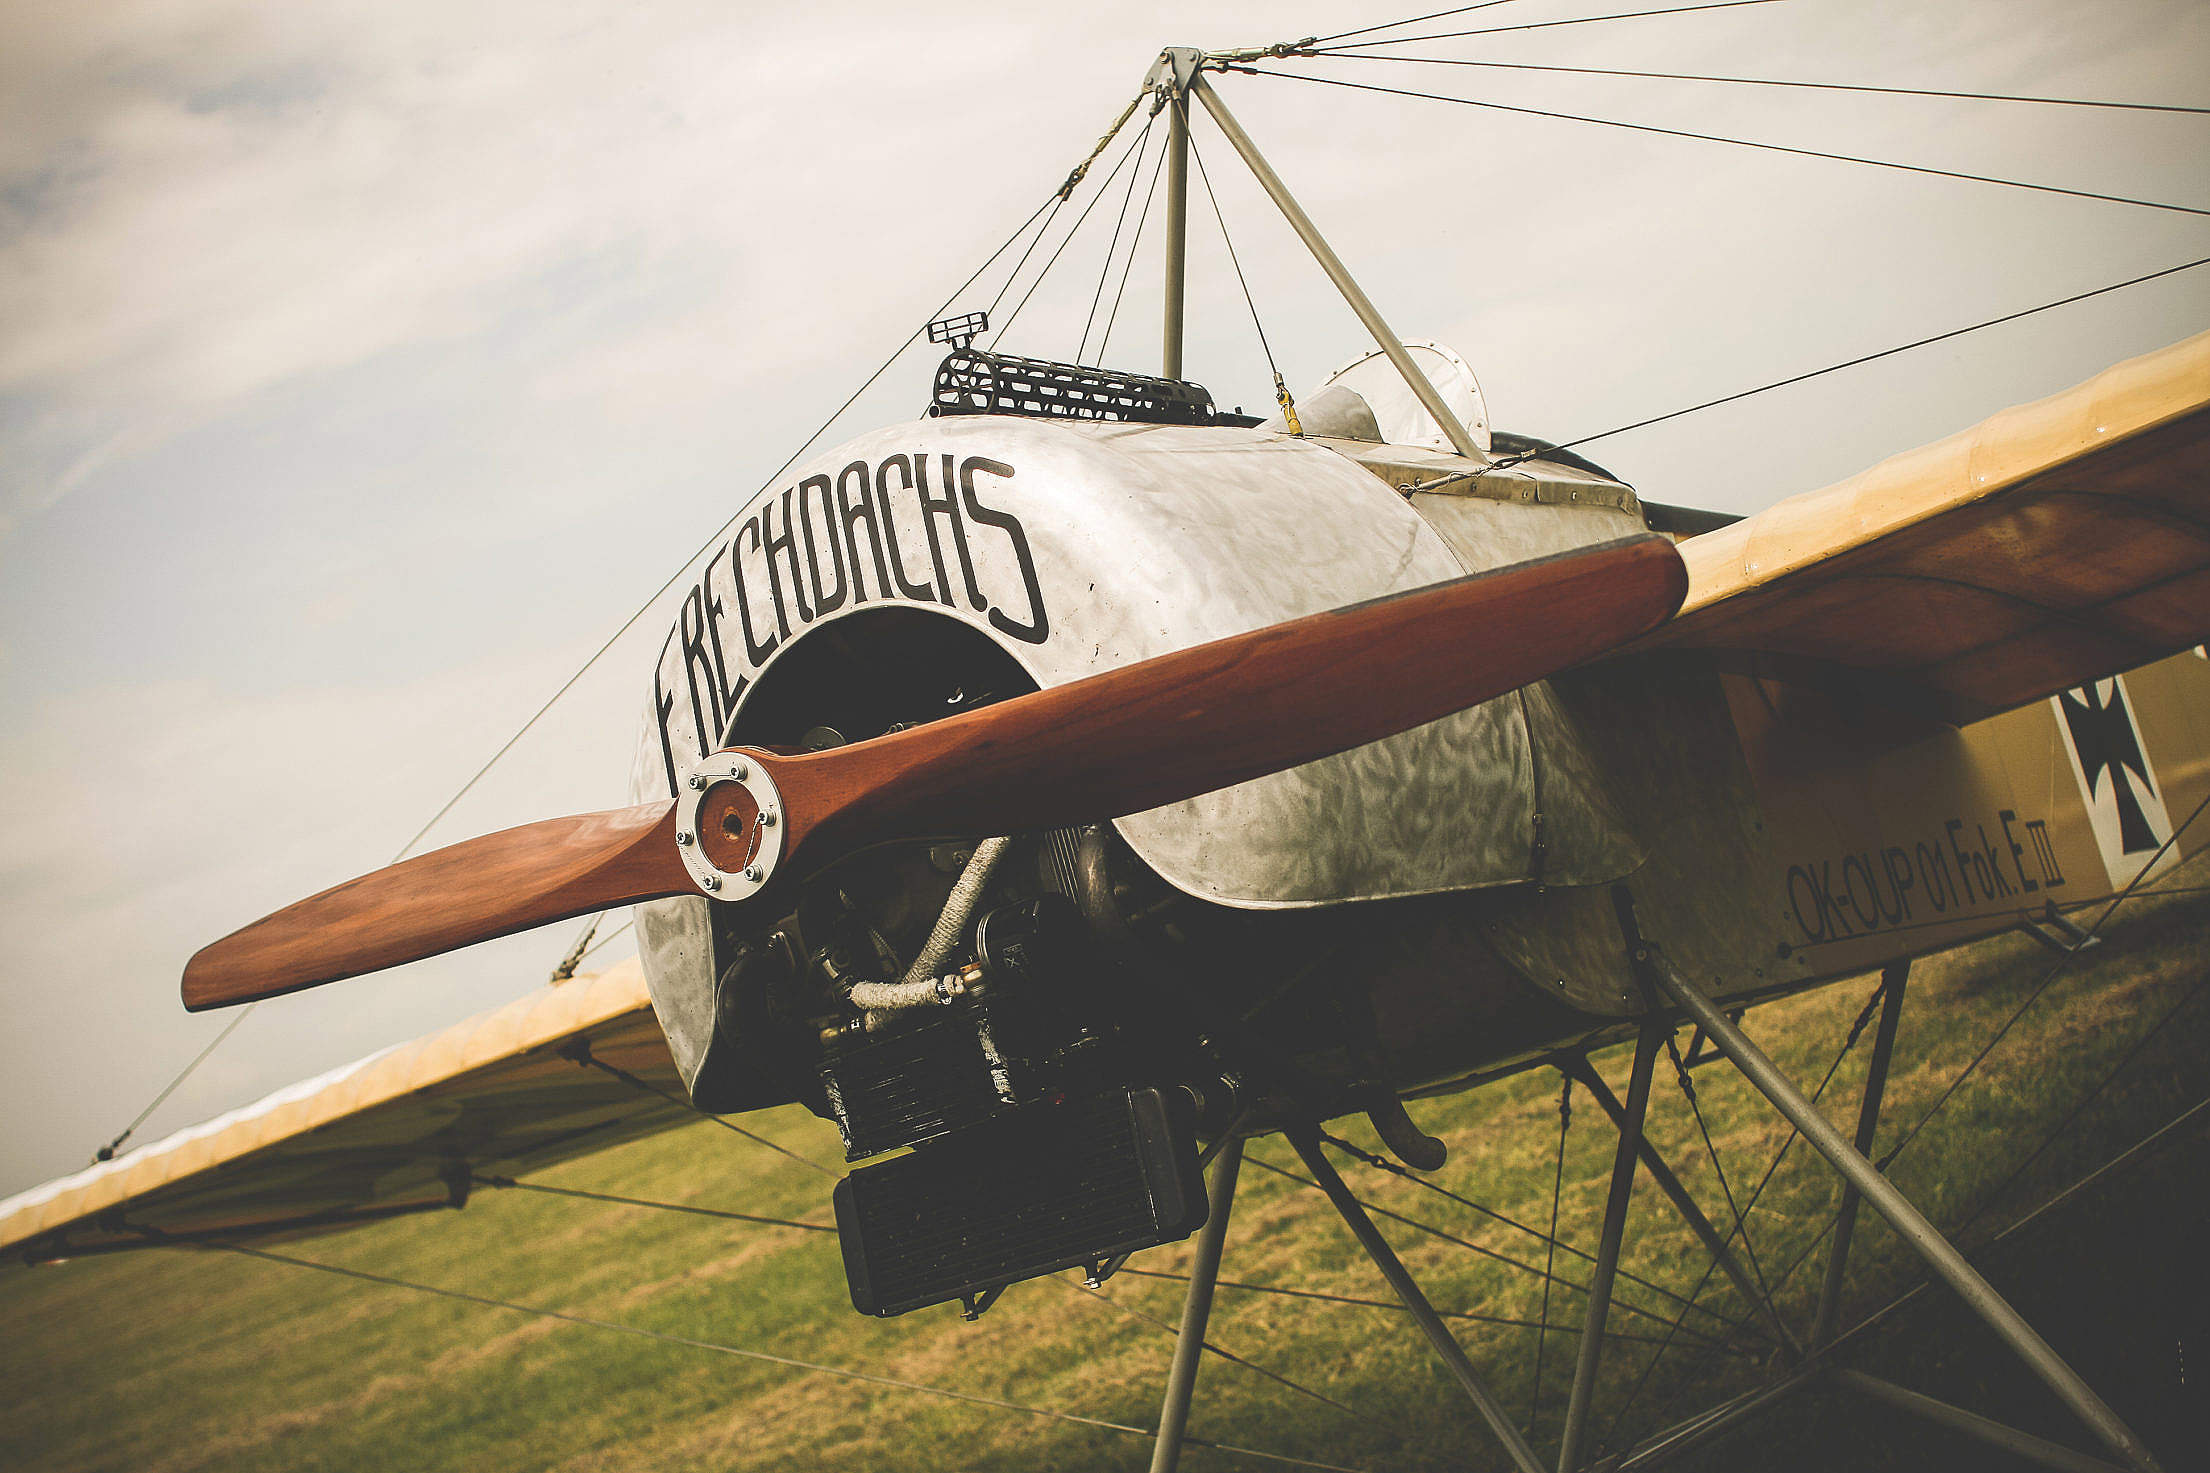 Frechdachs Old Plane Free Stock Photo